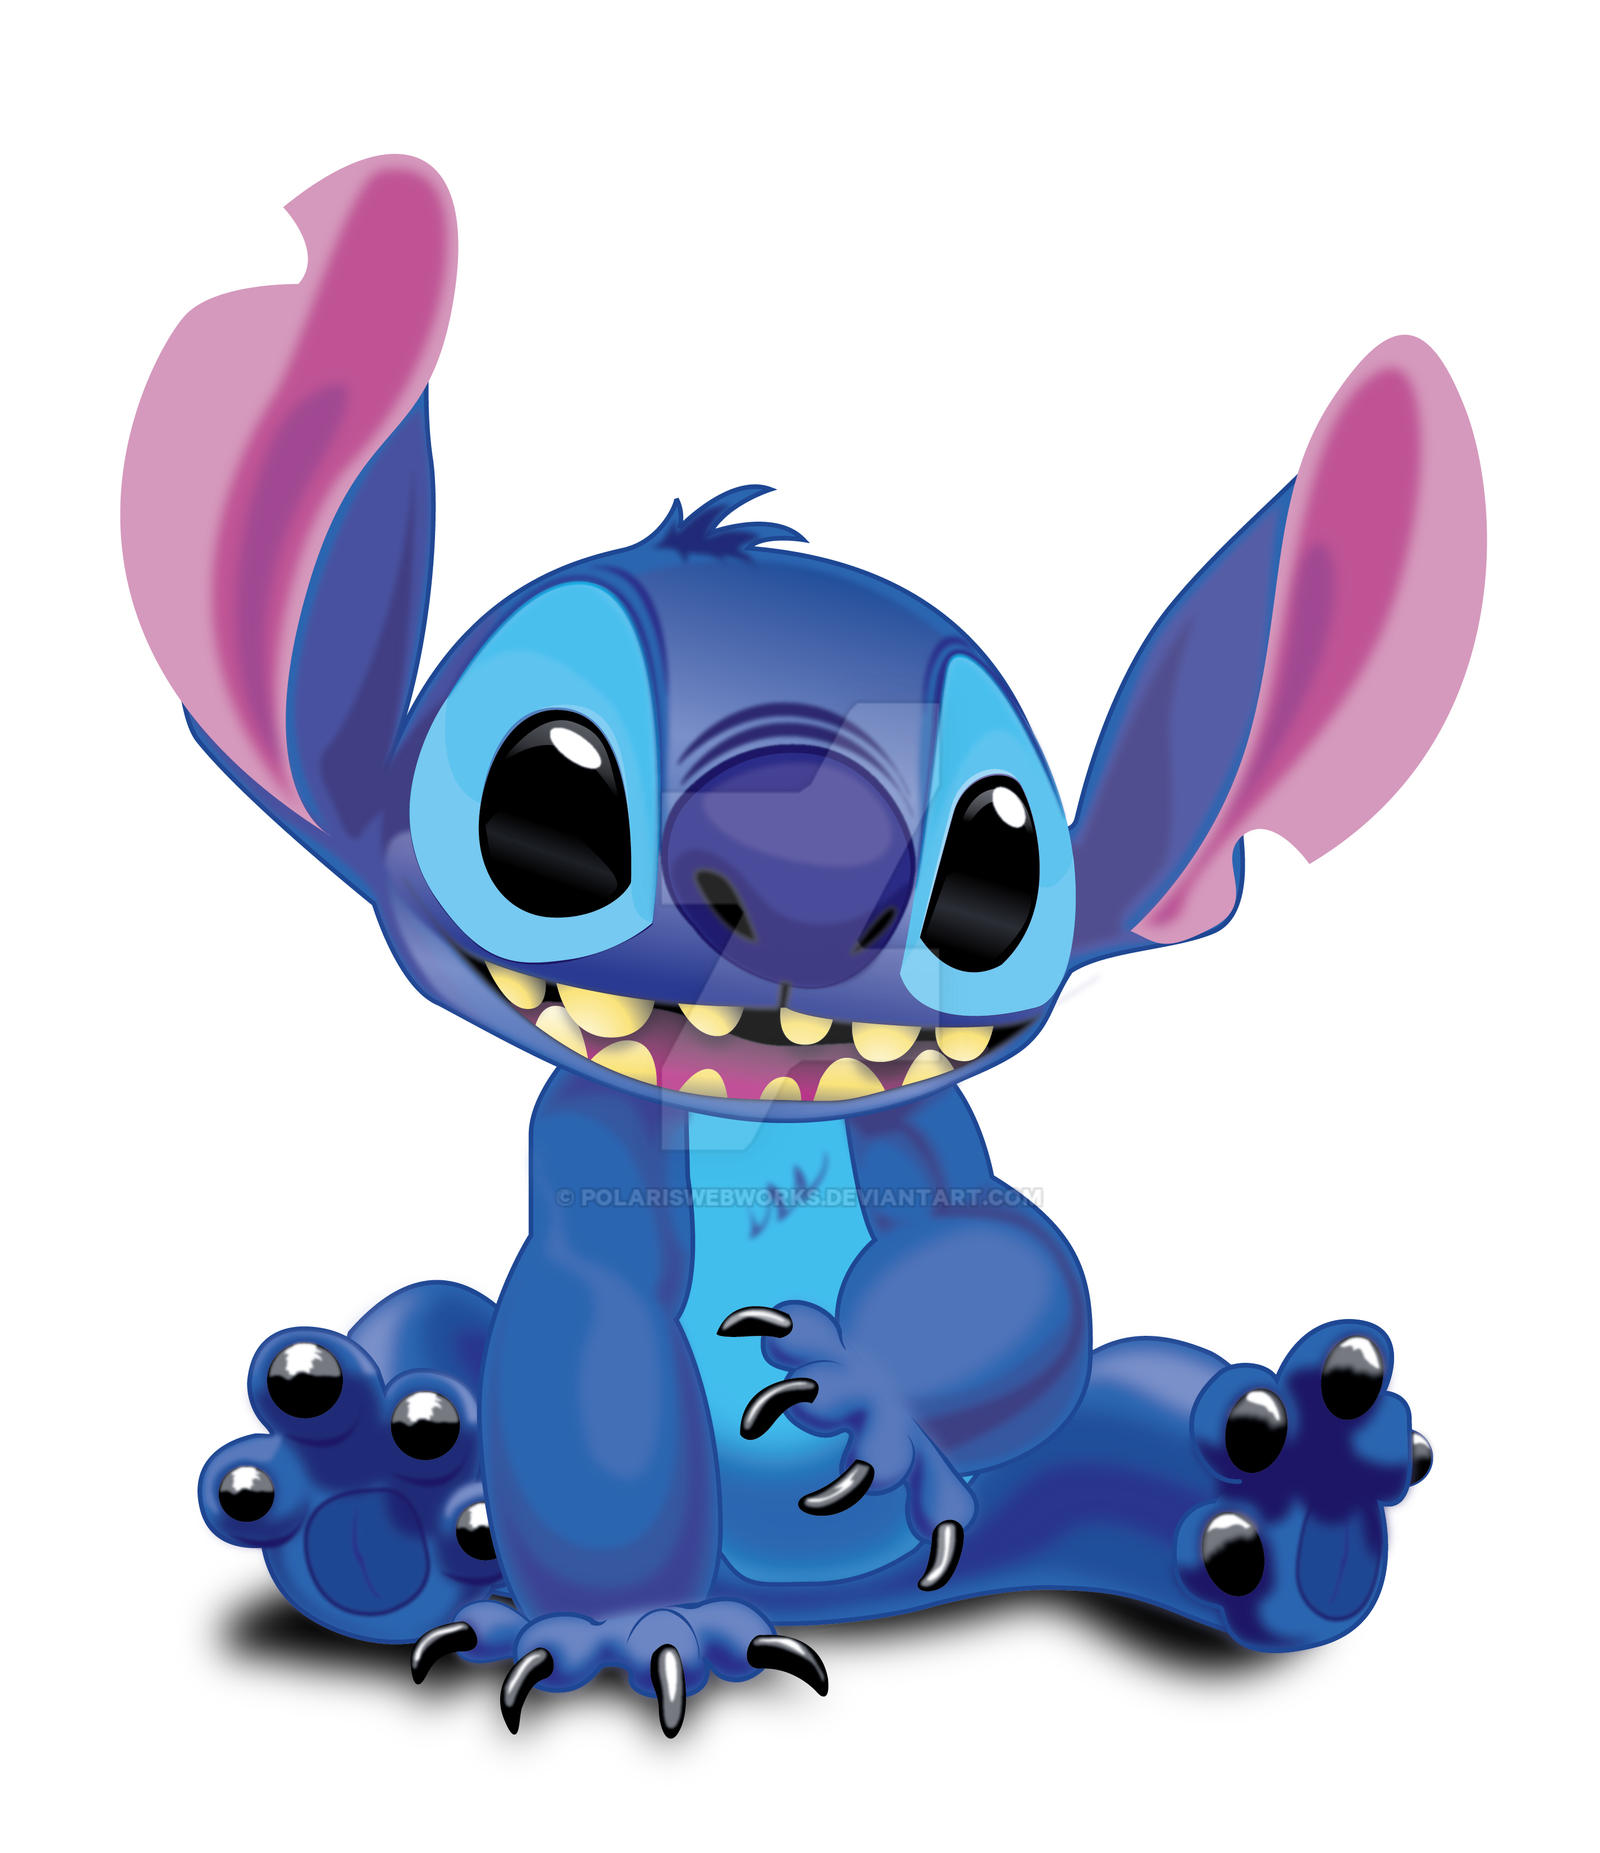 Disney'sStitch Vector by polariswebworks on DeviantArt